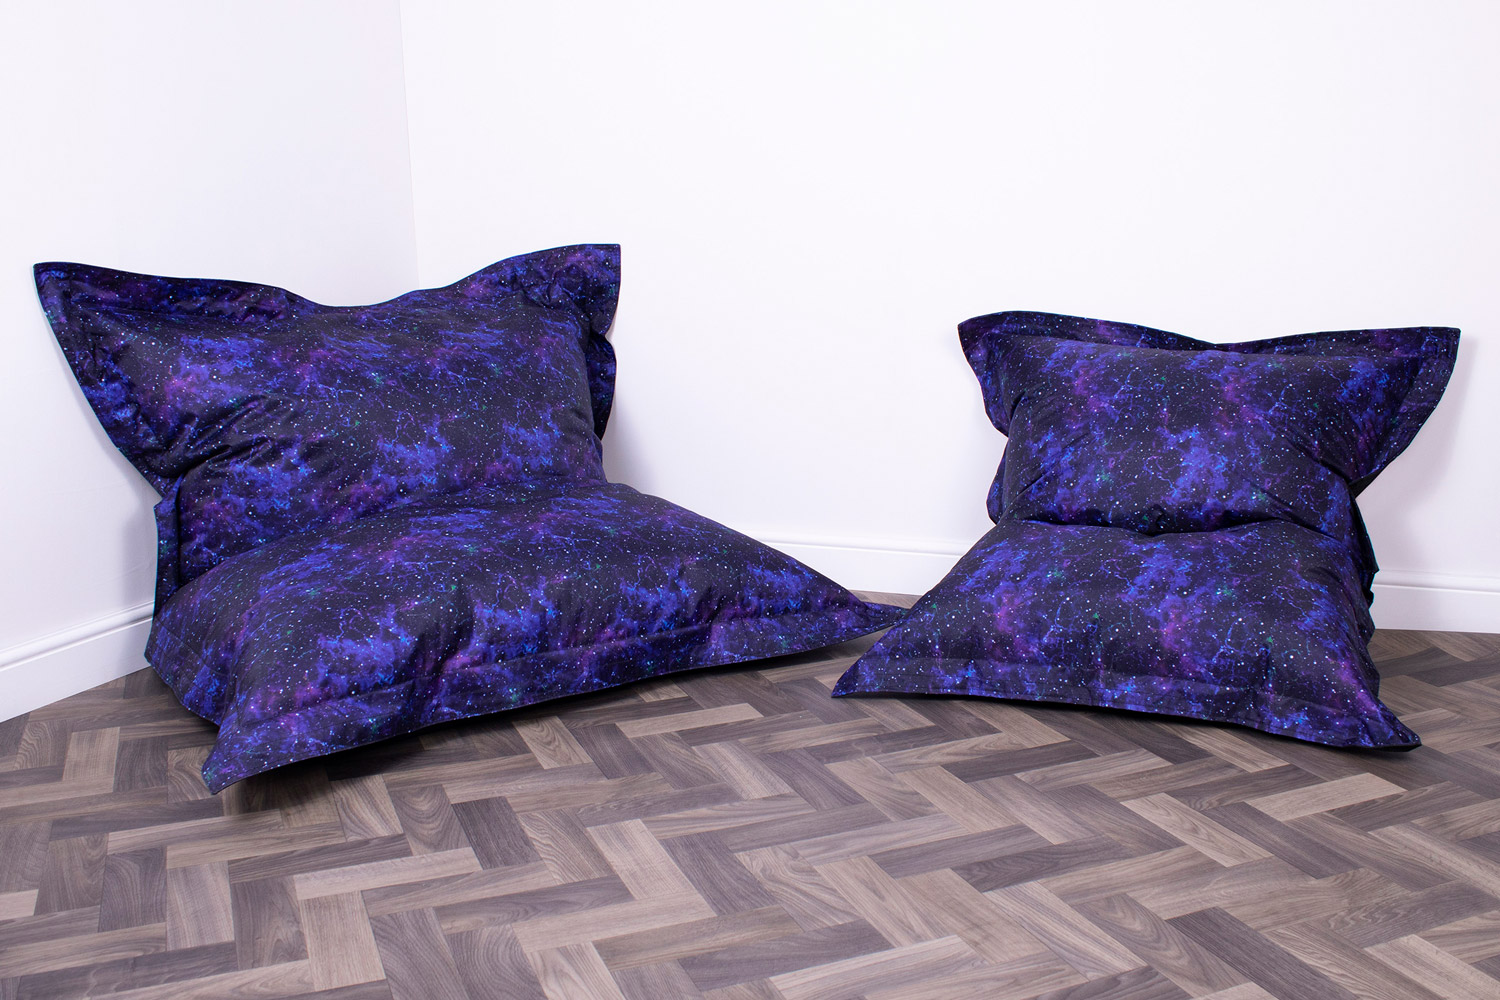 Eden-Galaxy-Print-Floor-Cushion.jpg